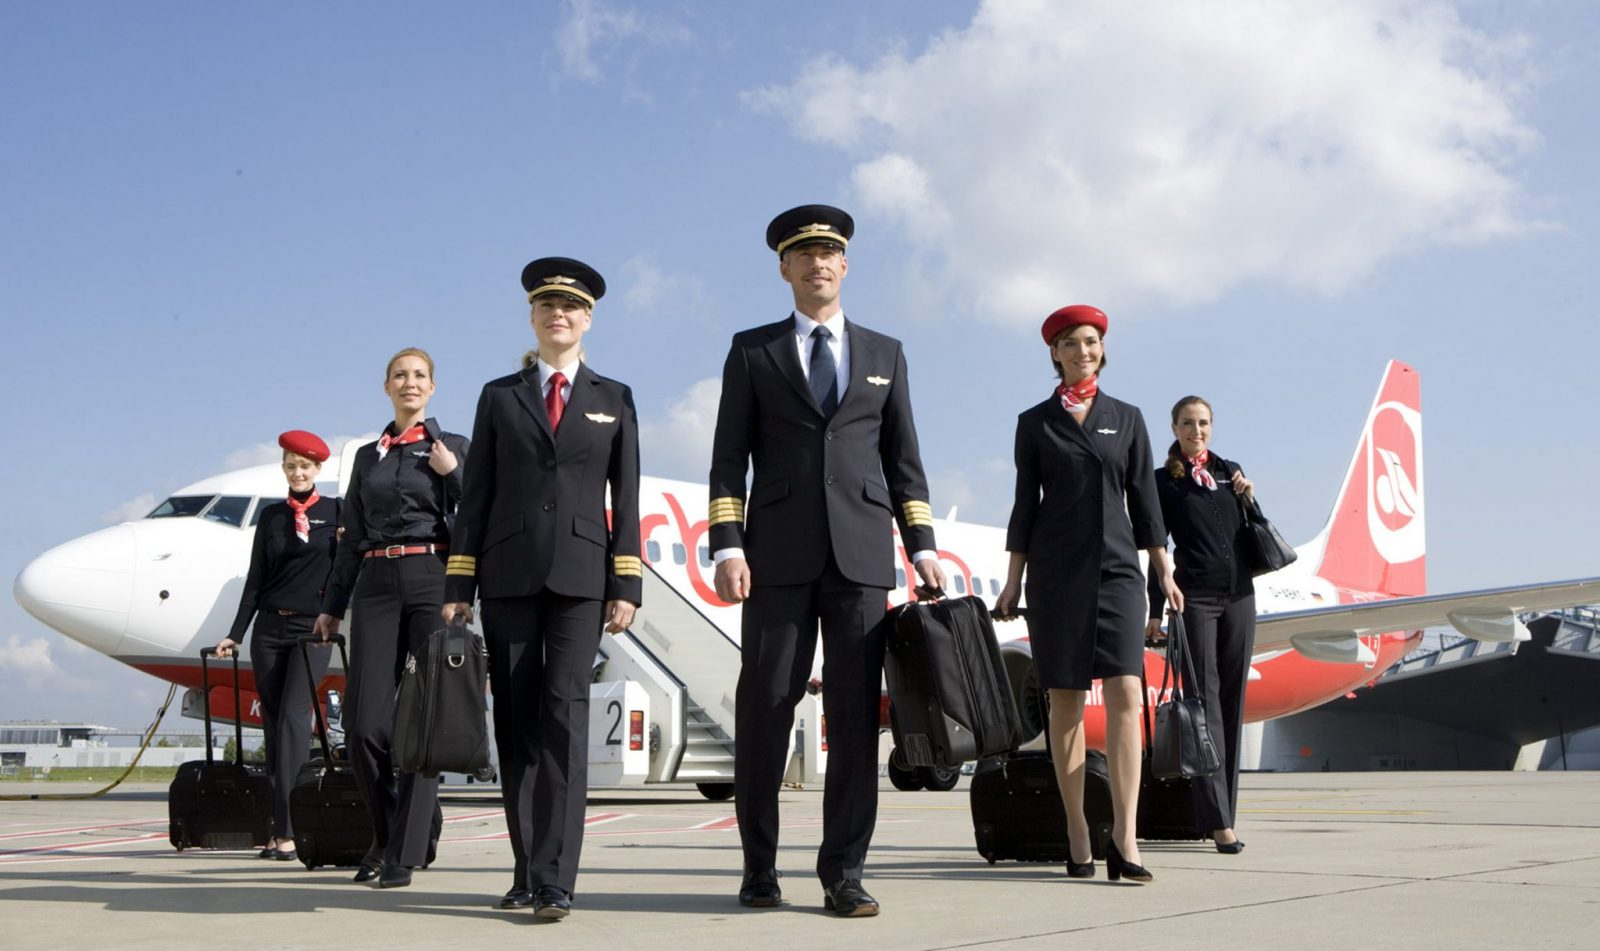 Over 100 airberlin Flights Are Cancelled as Pilots Take Part in Mass 'Sick-In'